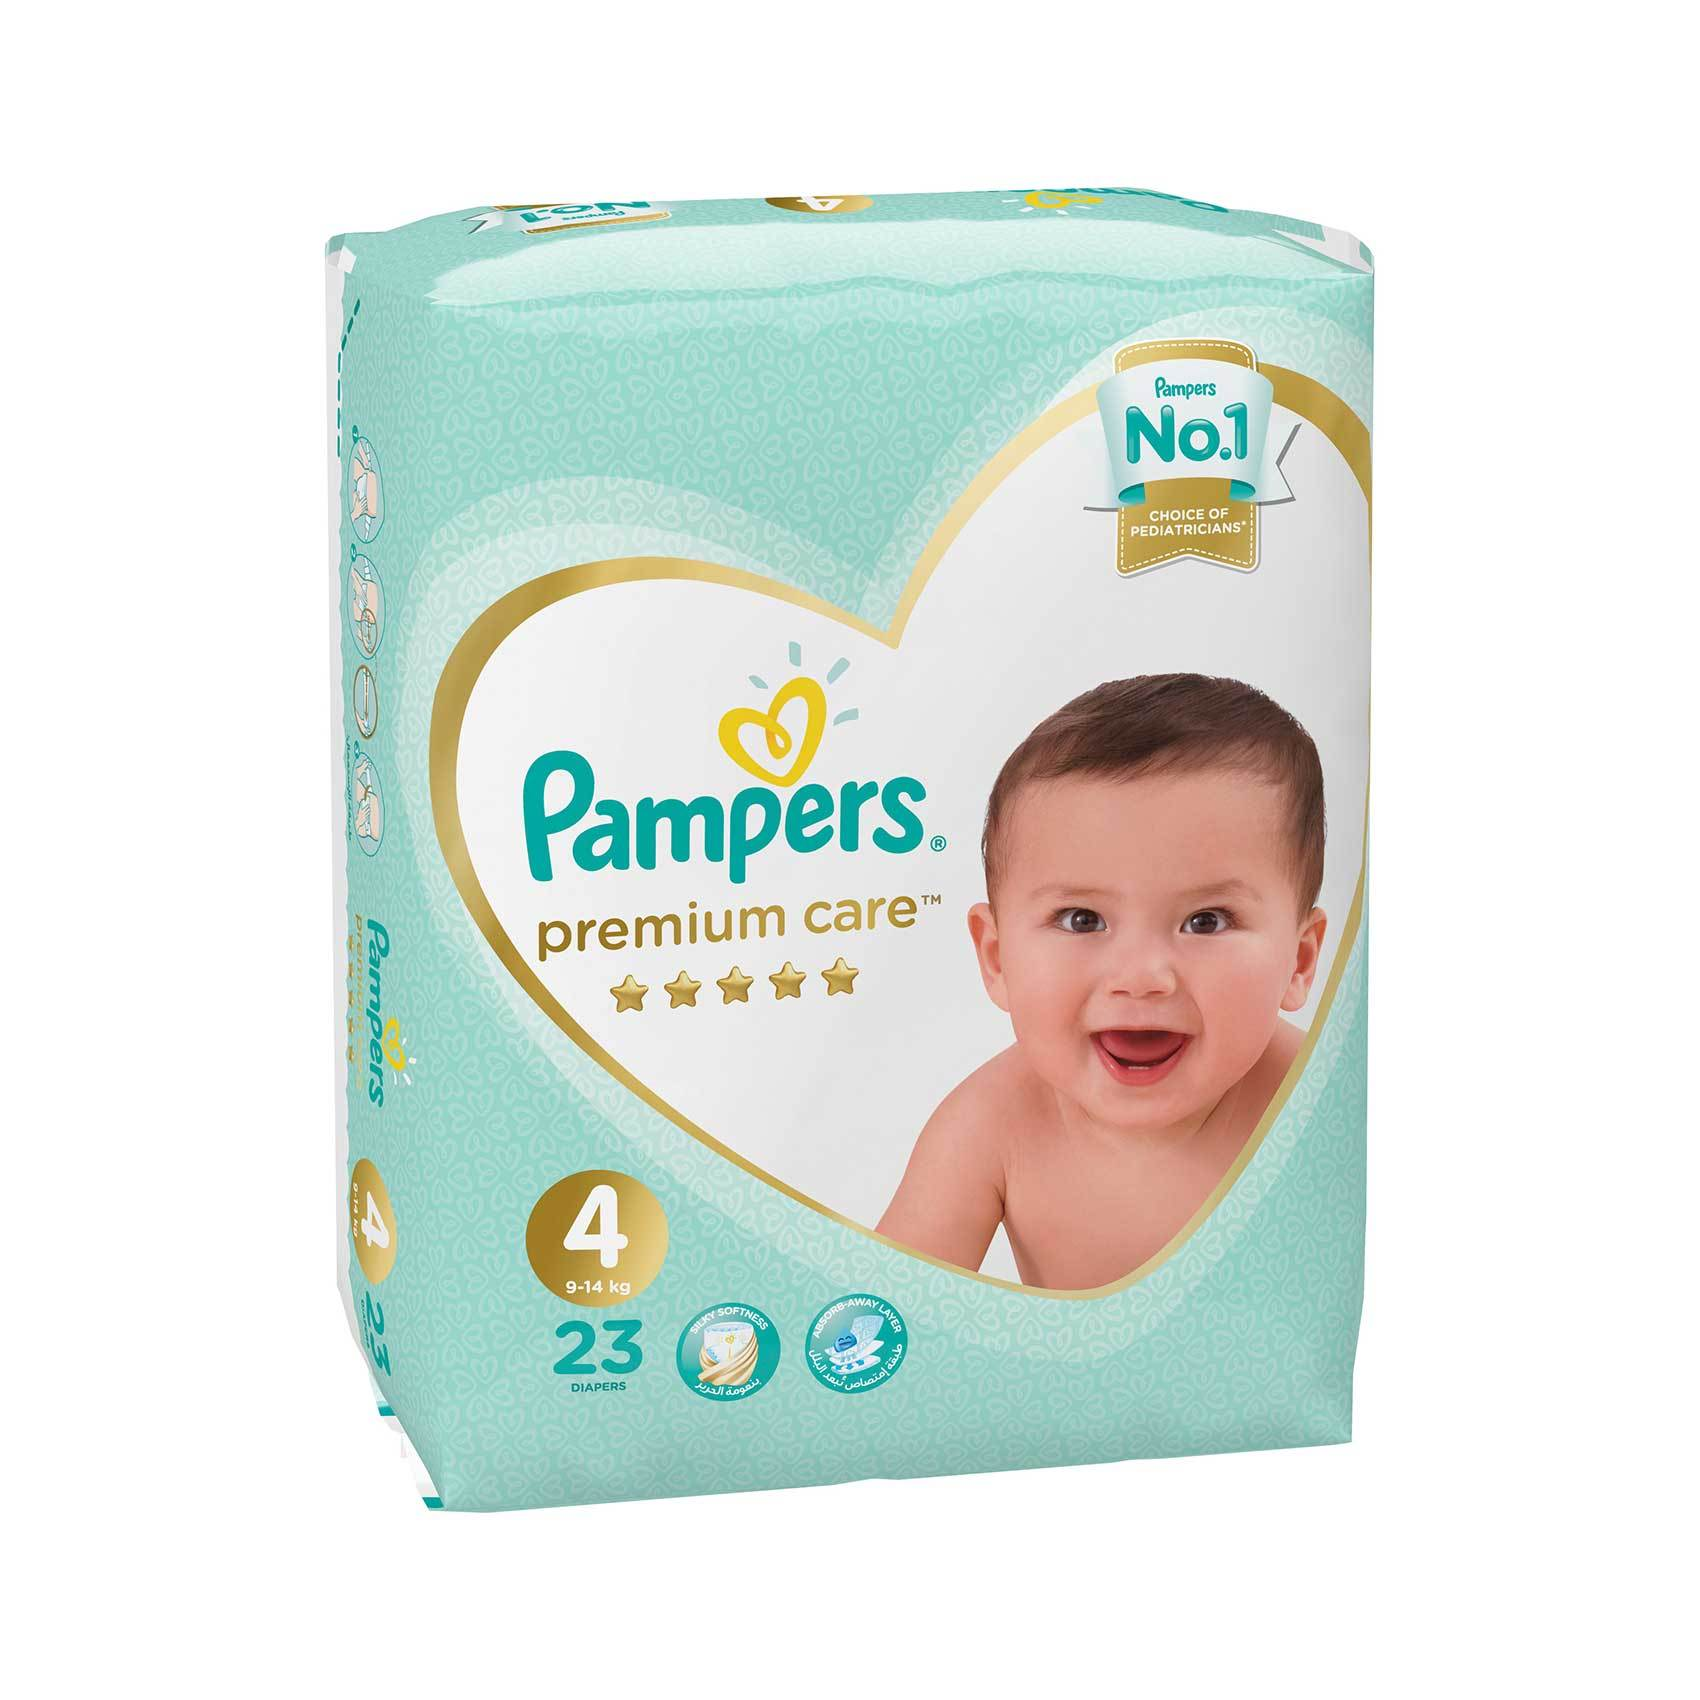 Buy Pampers Premium Care Diapers Size 4 Maxi Carry Pack X 23 Diapers Online Shop Baby Products On Carrefour Saudi Arabia